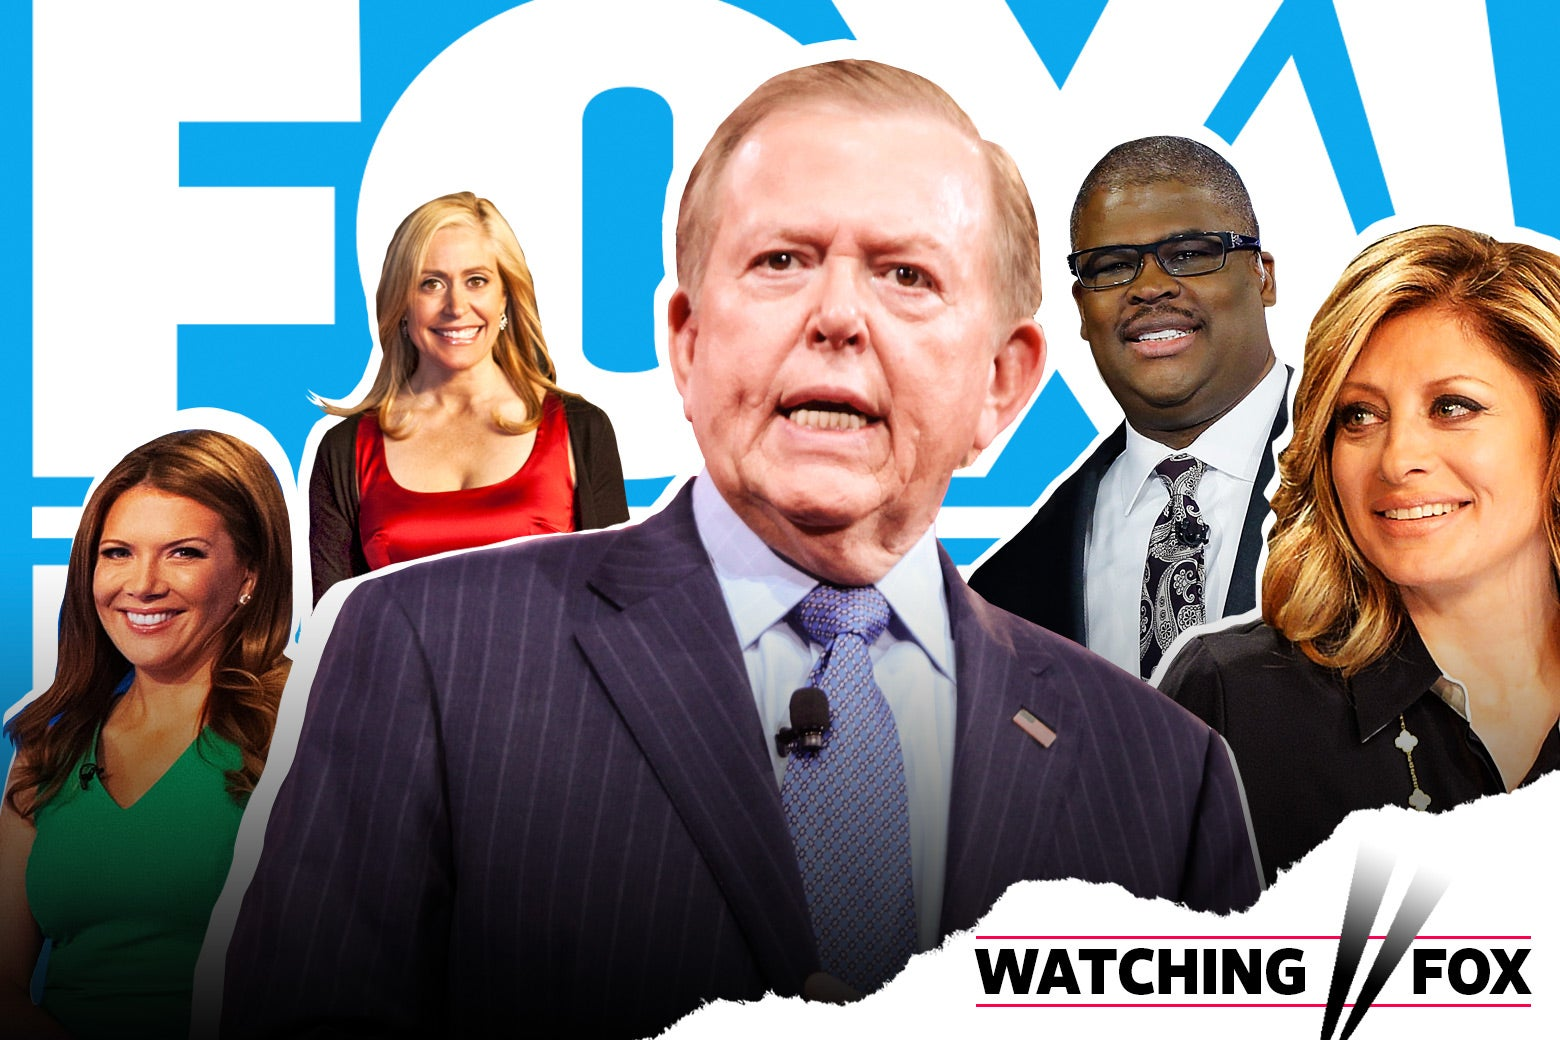 Various Fox Business hosts, like Lou Dobbs and Maria Bartiromo.